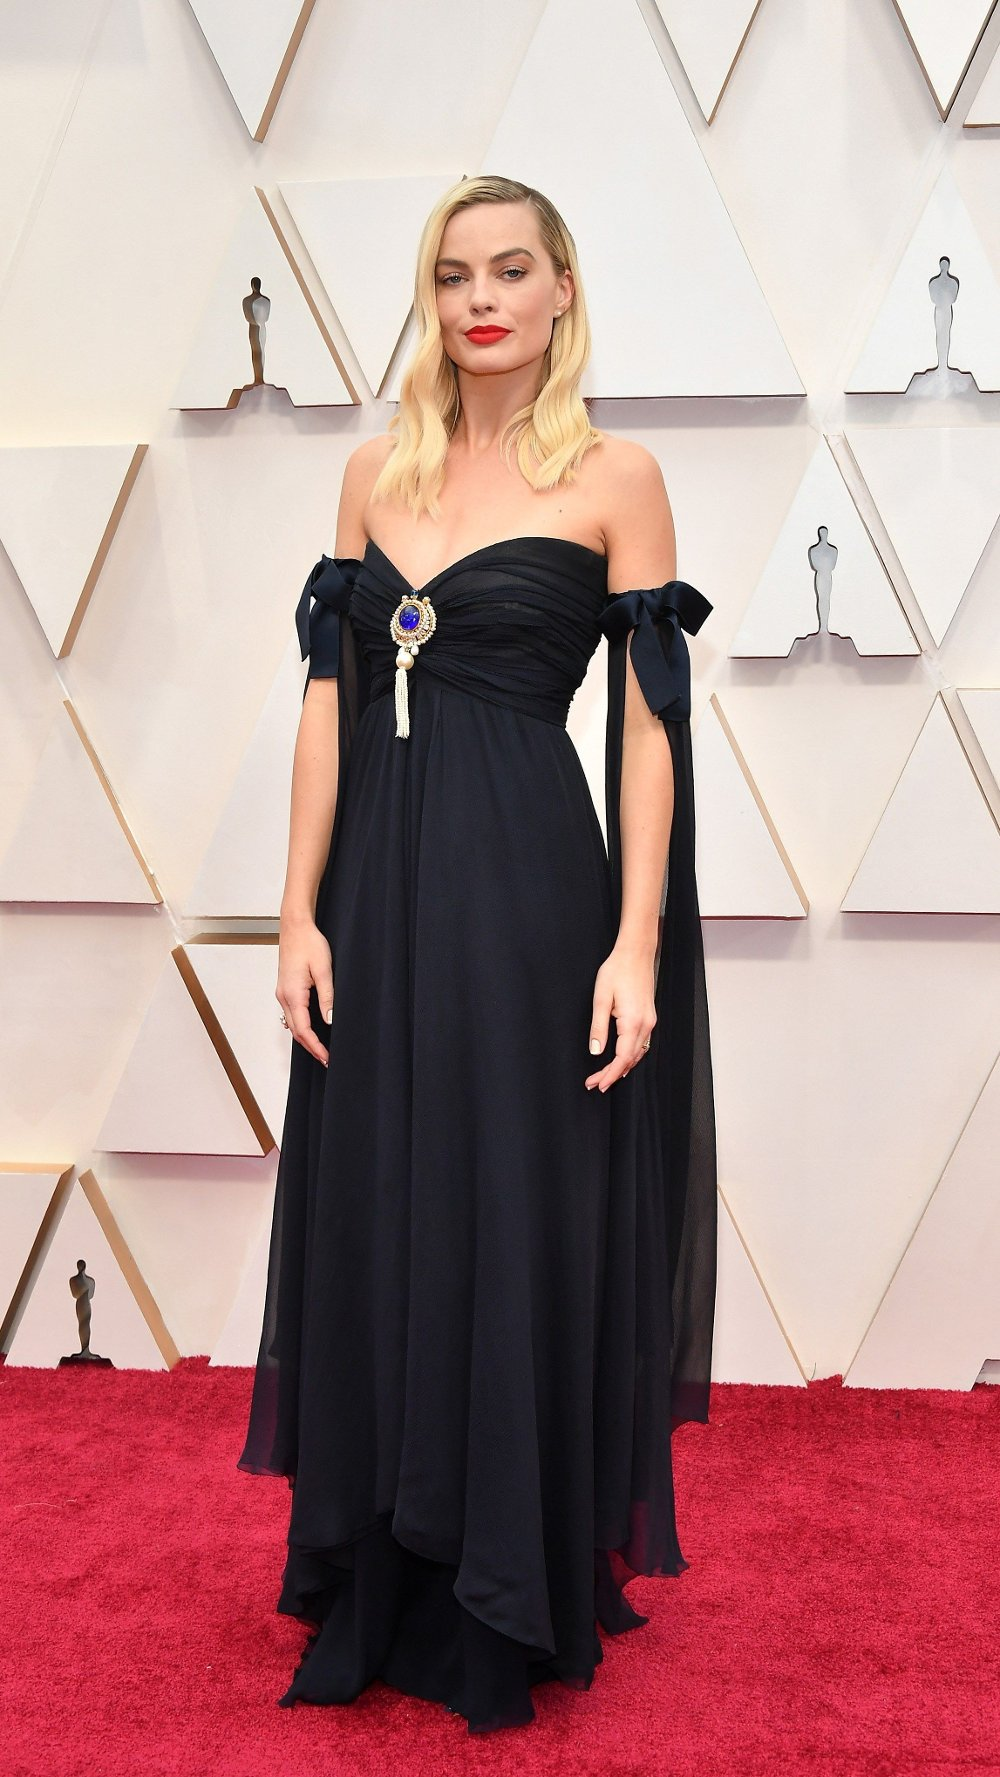 Klikk på bildet for å forstørre. 2020 Getty Entertainment - Social Ready Content HOLLYWOOD, CALIFORNIA - FEBRUARY 09: Margot Robbie attends the 92nd Annual Academy Awards at Hollywood and Highland on February 09, 2020 in Hollywood, California. Amy Sussman/Getty Images/AFP == FOR NEWSPAPERS, INTERNET, TELCOS & TELEVISION USE ONLY ==